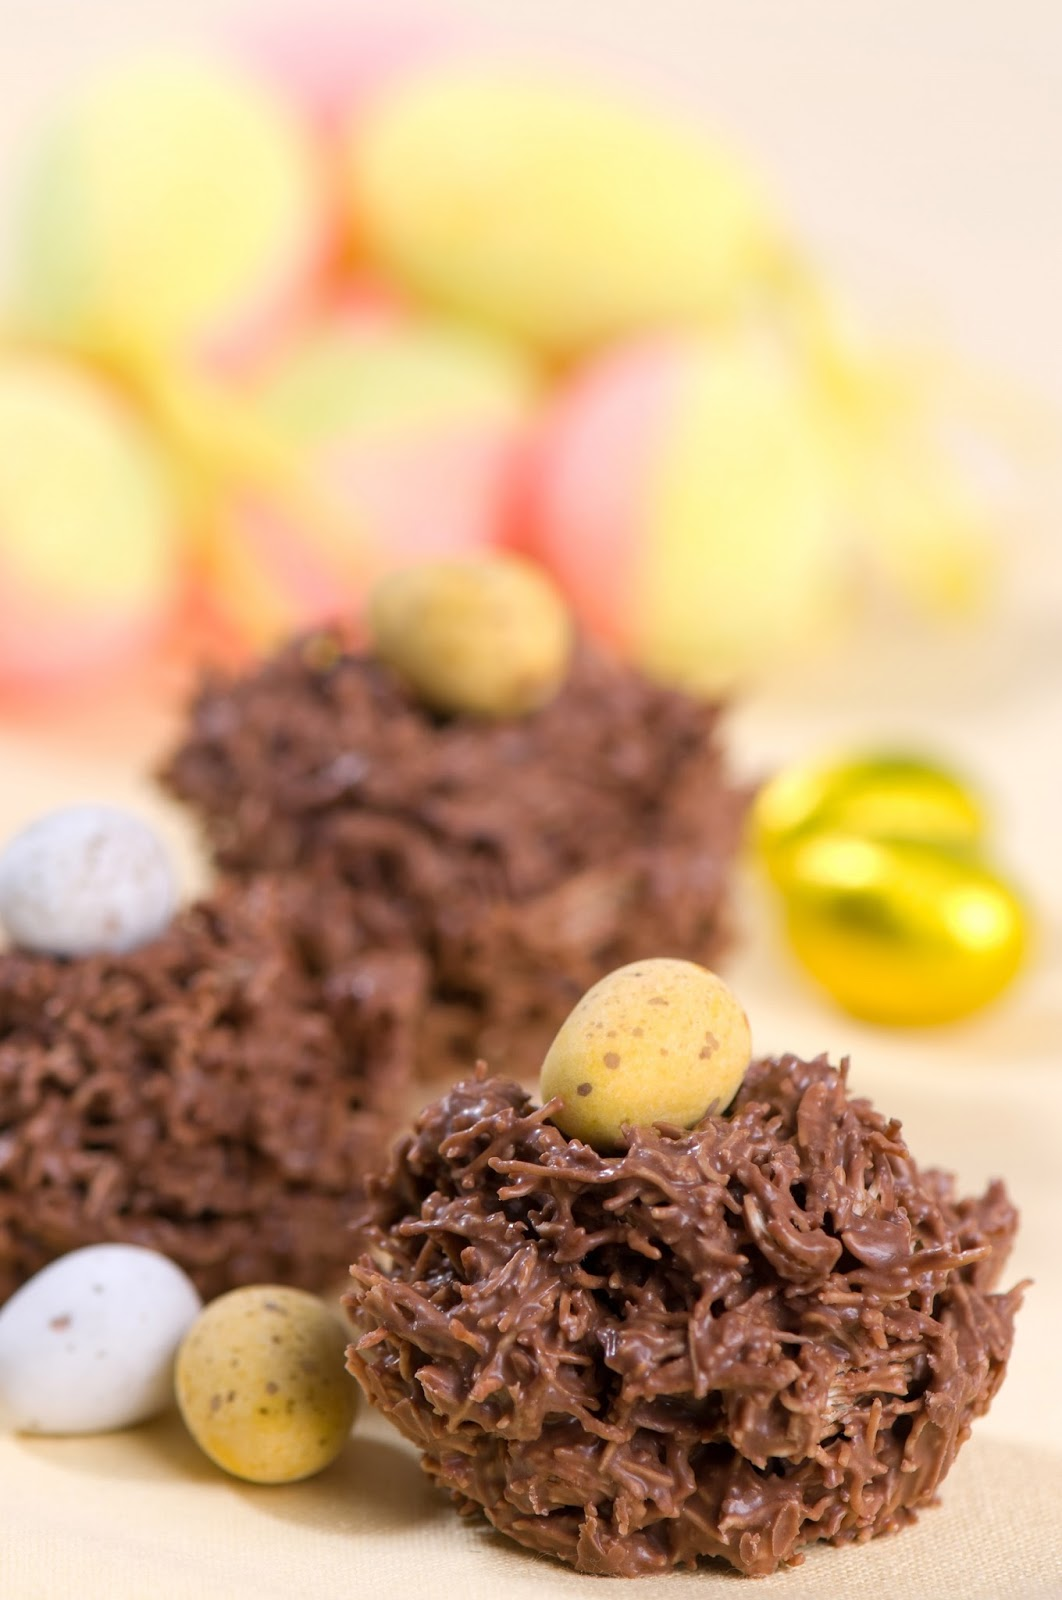 How To Make Delamere Easter Chocolate Nests